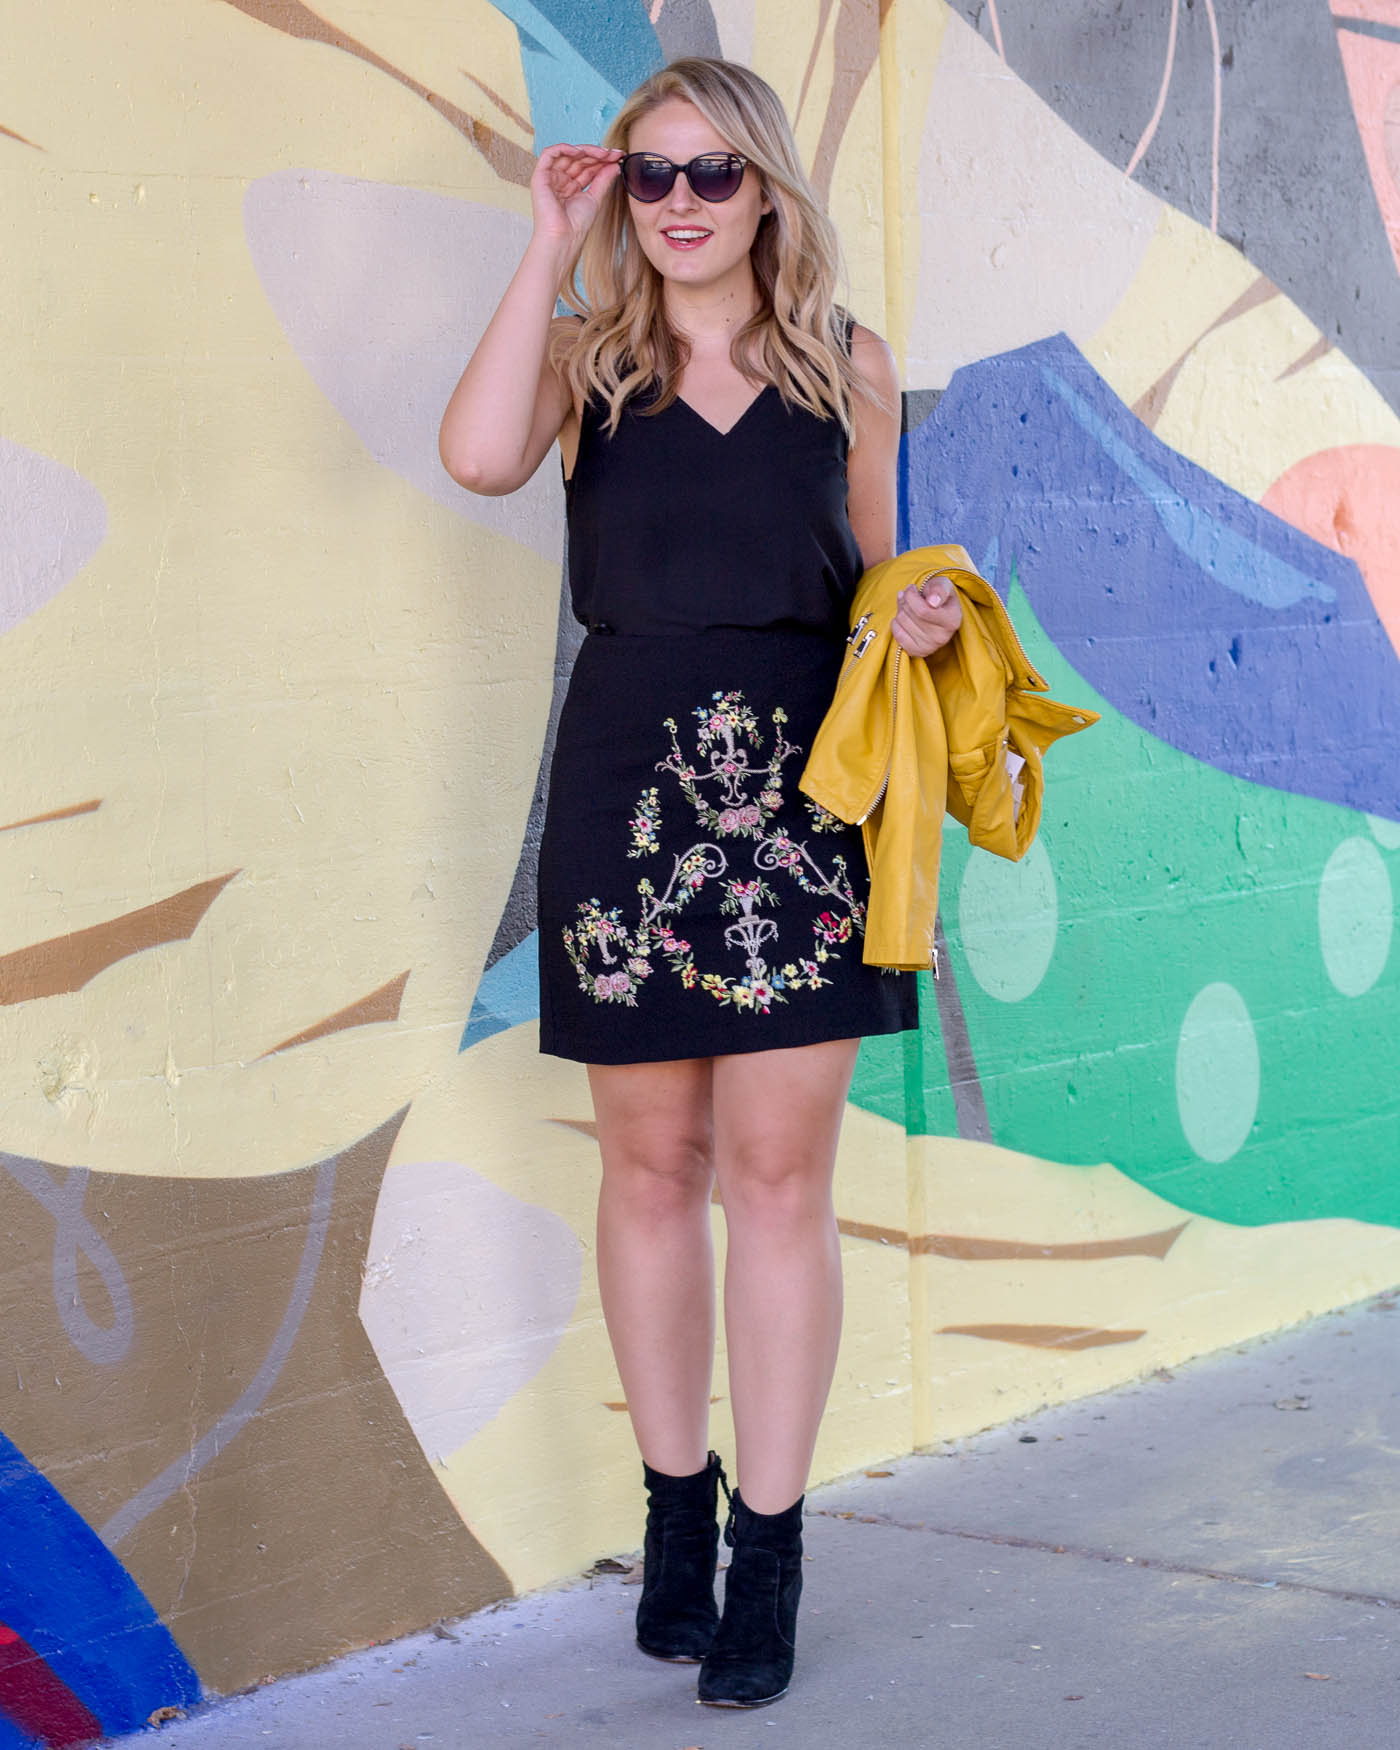 ASOS embroidery black skirt with a pop of yellow leather jacket